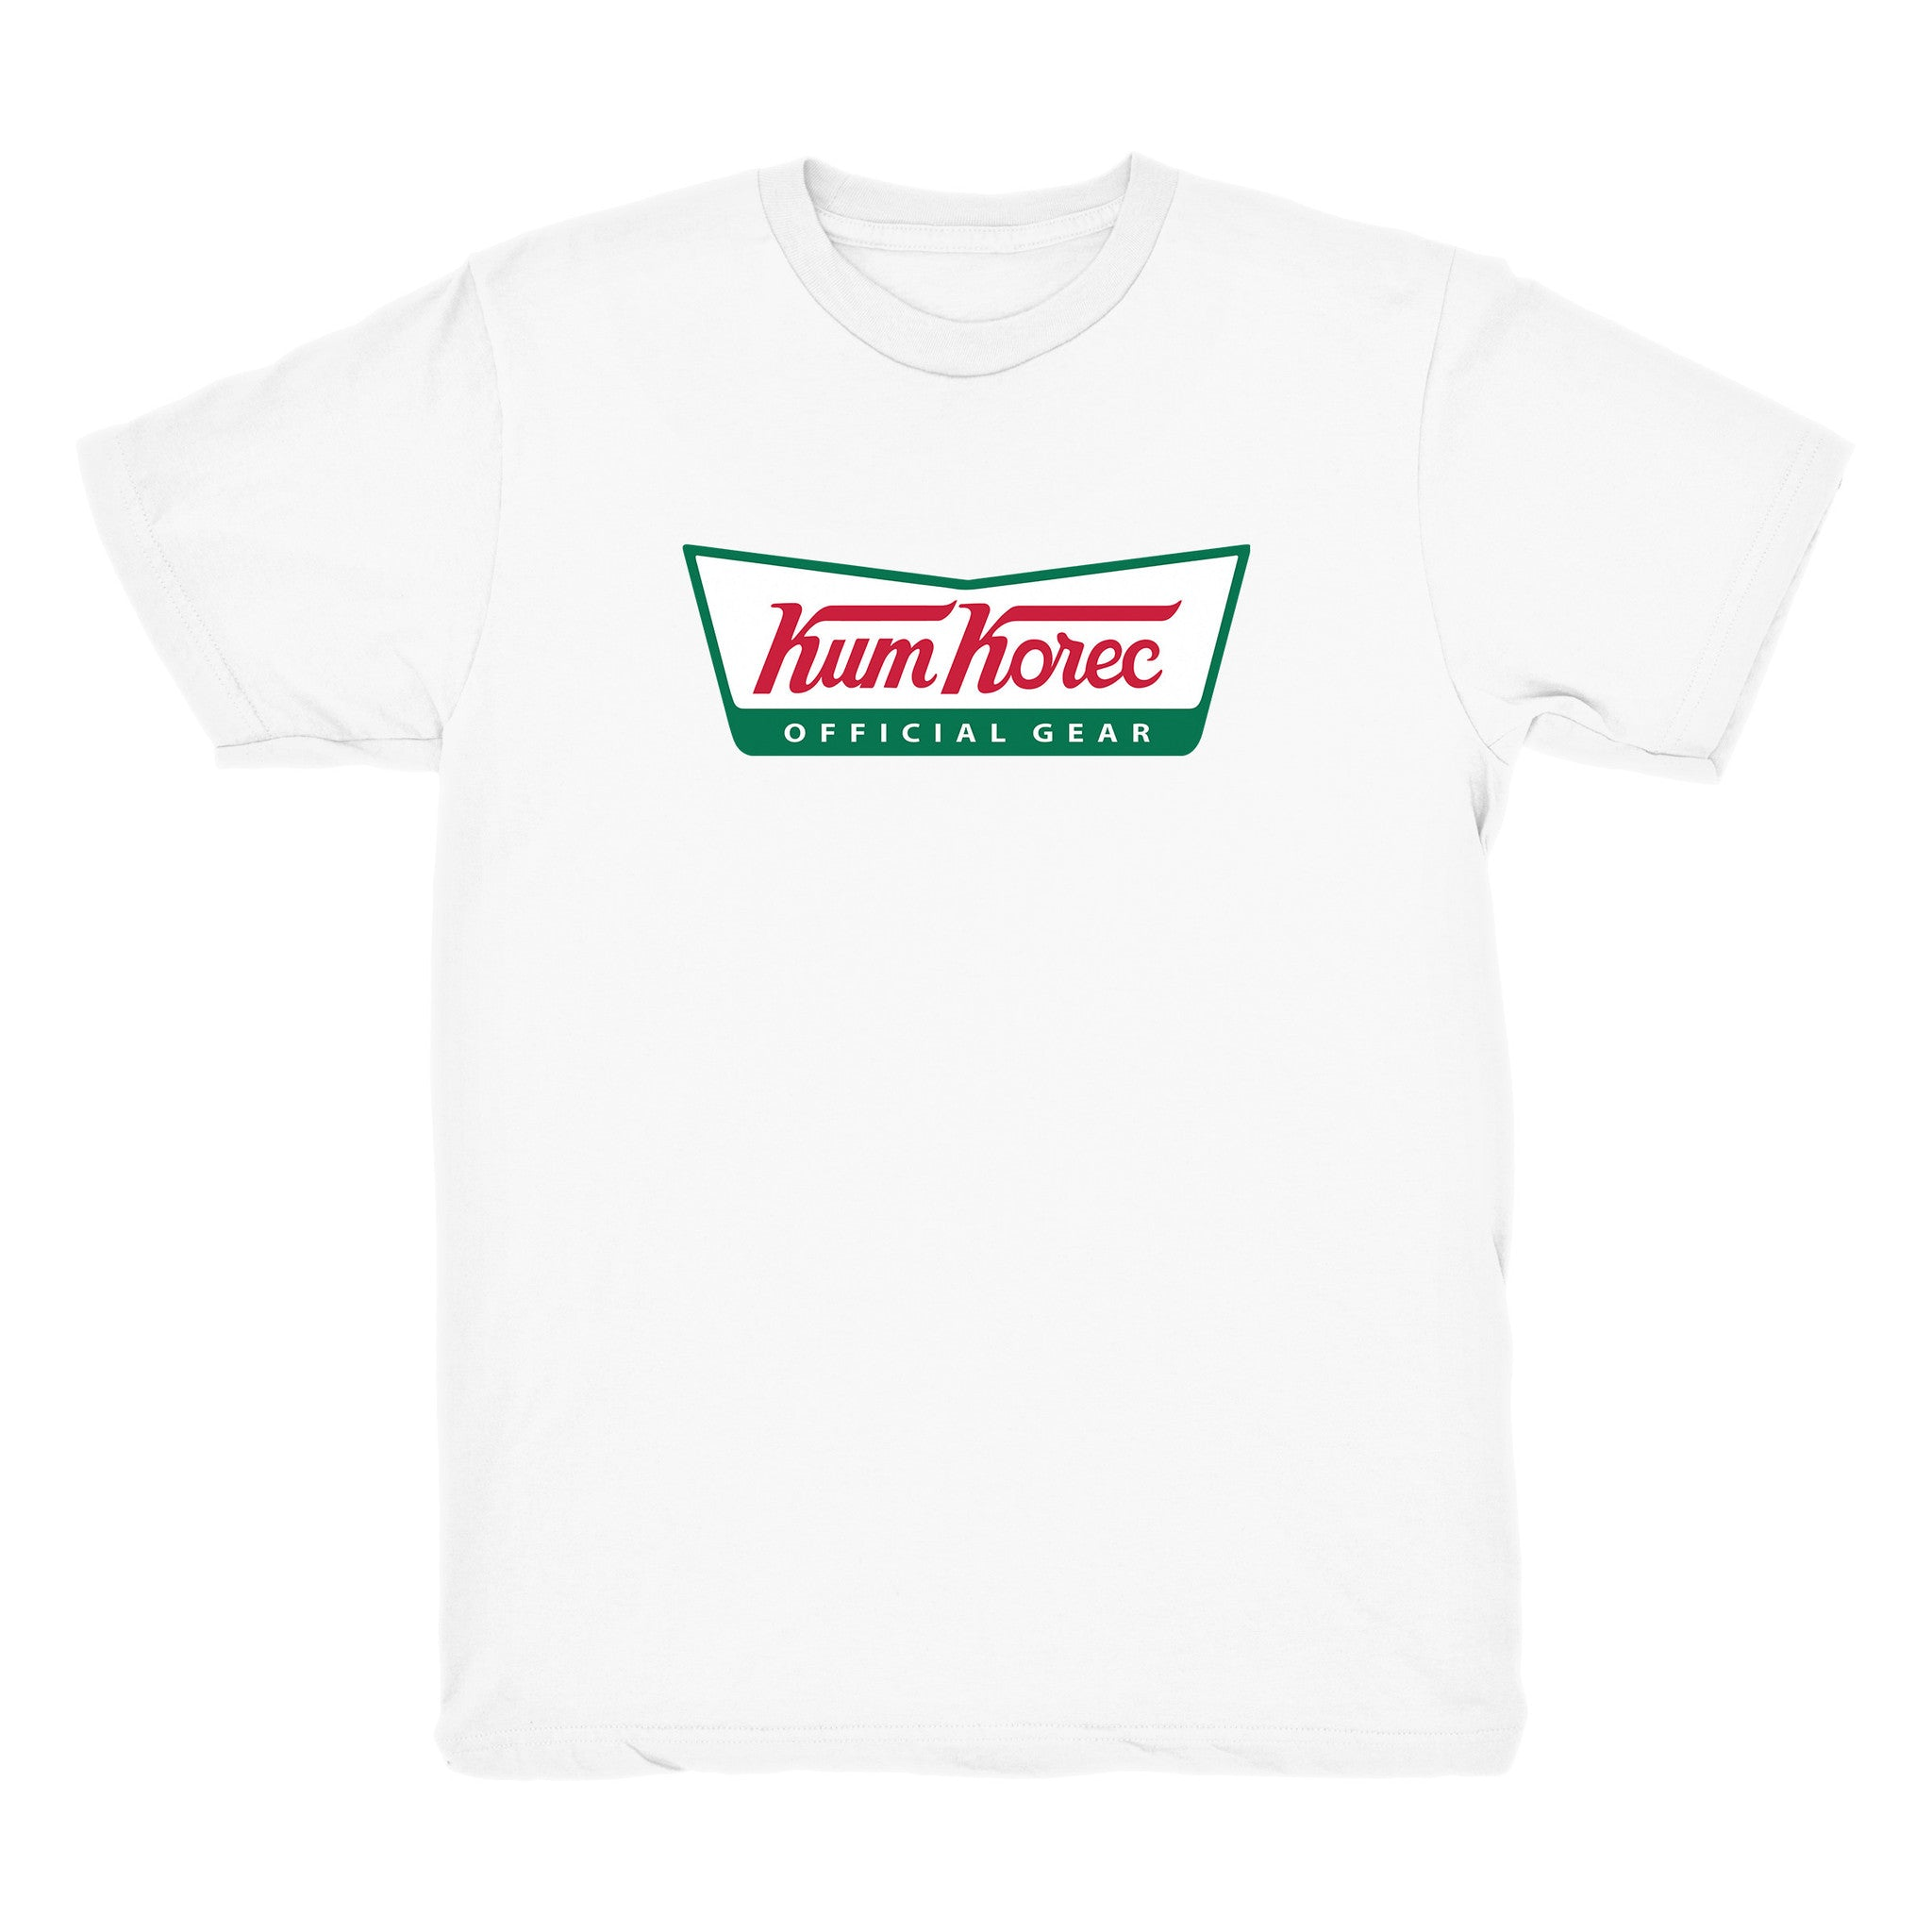 Kum Korec Official Krispy Tee - SLAE Apparel